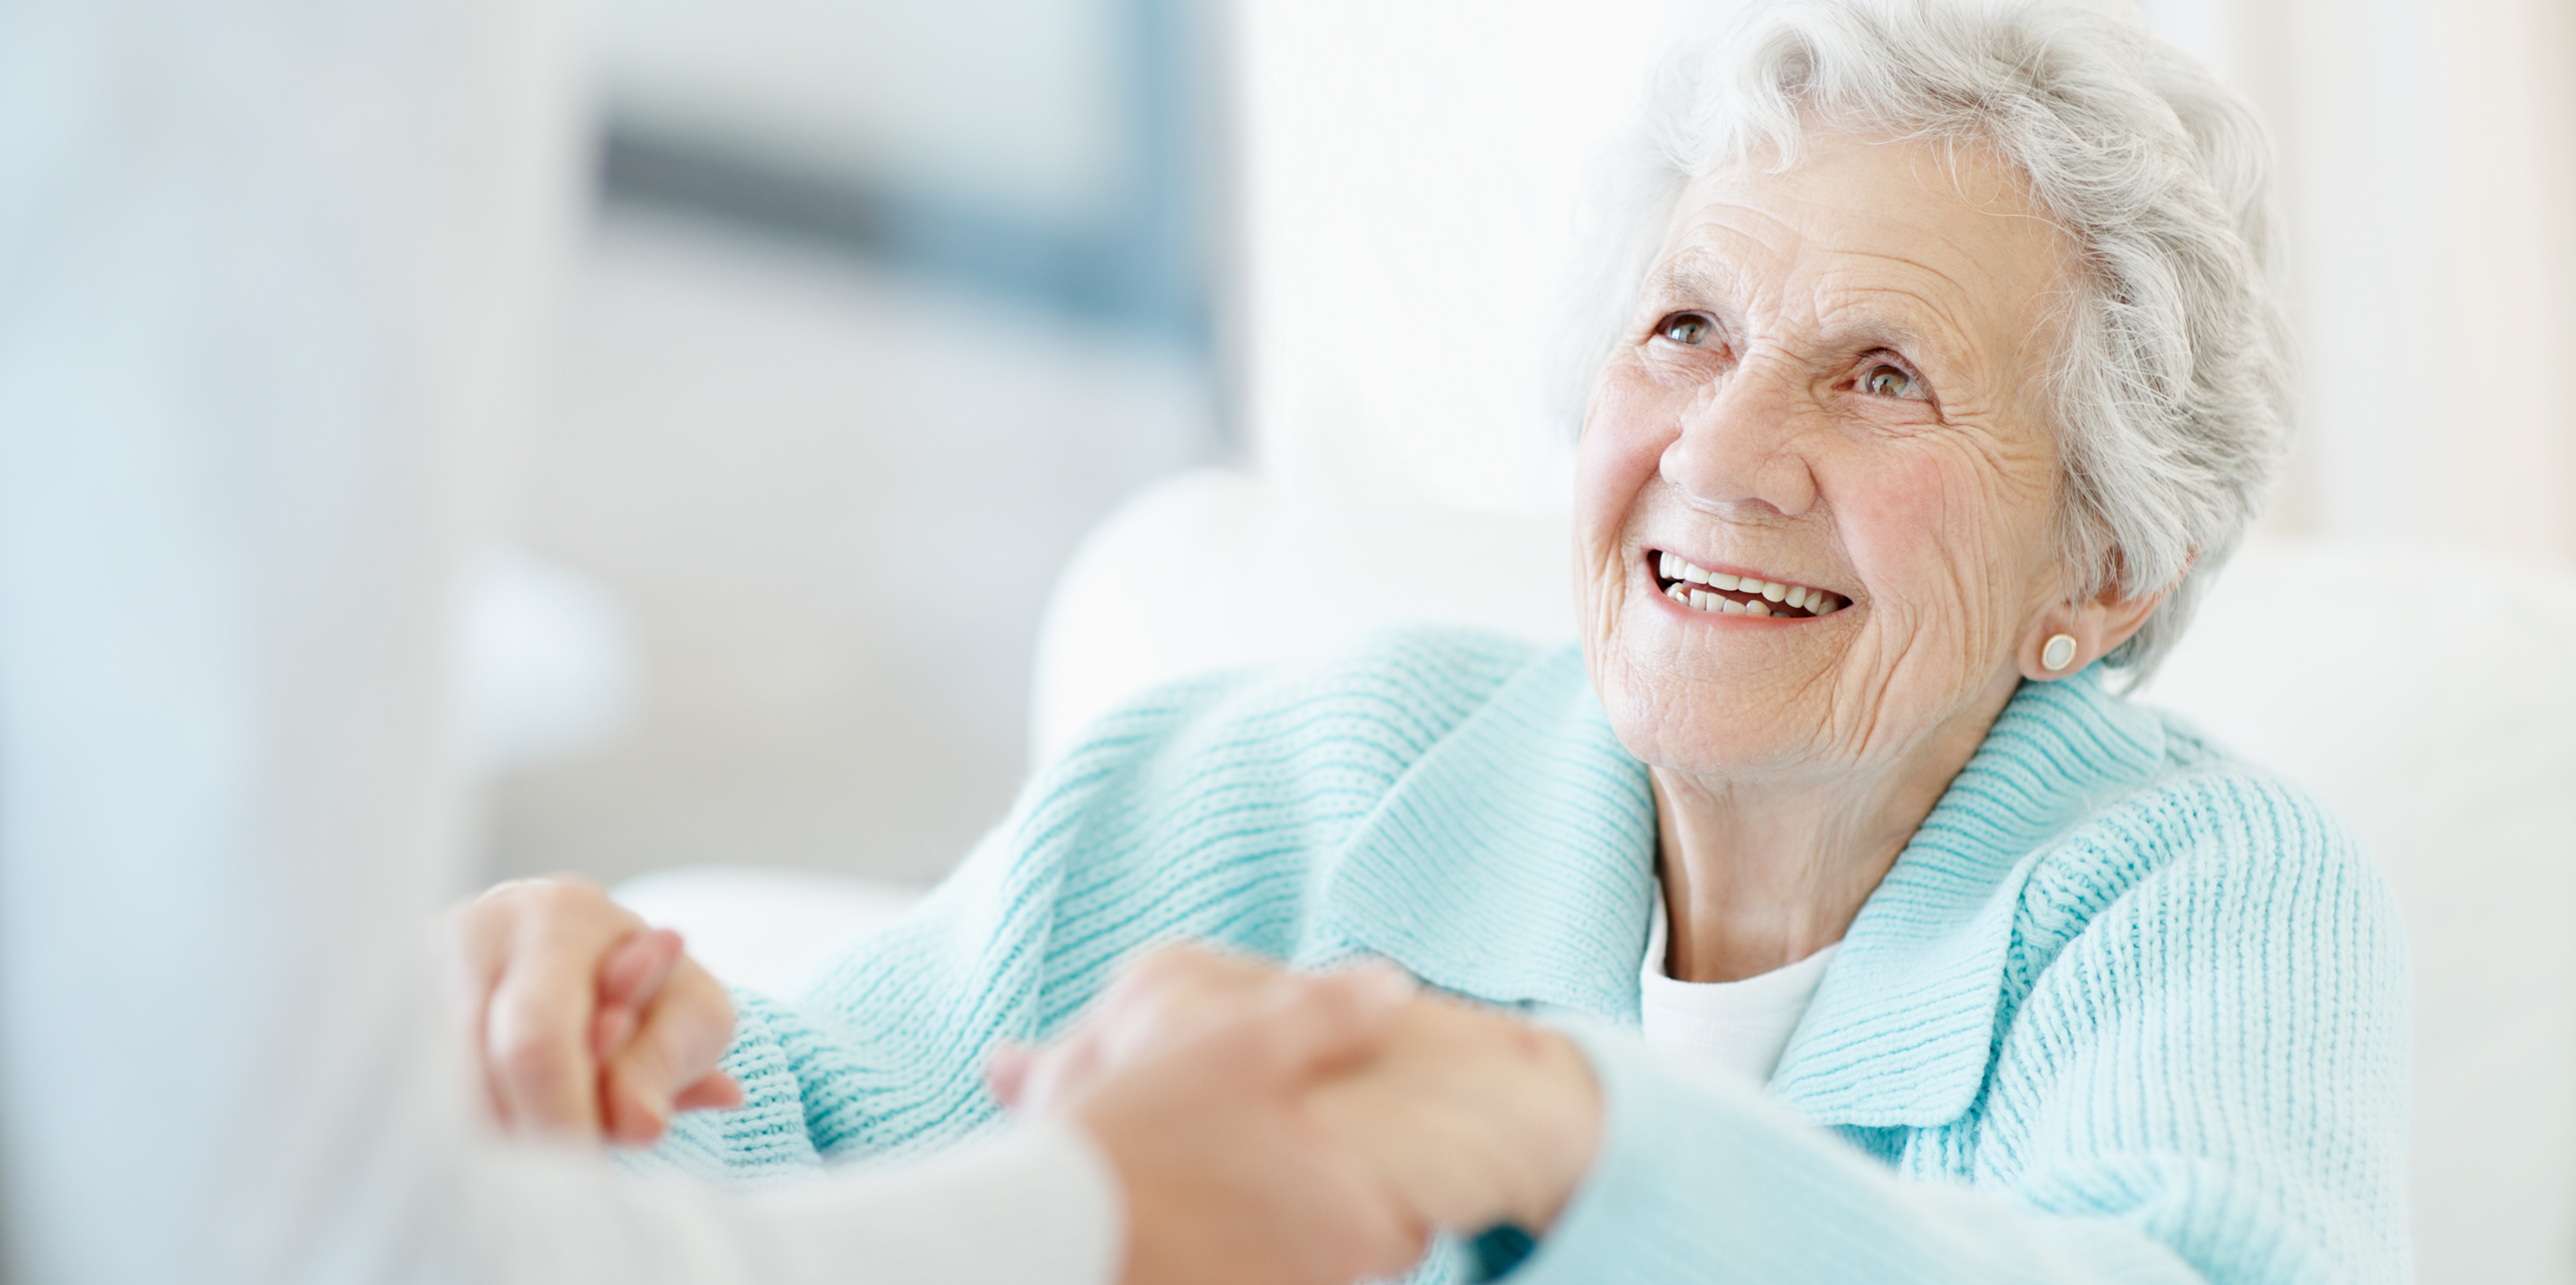 Elderly patient or resident in nursing home, skilled nursing, long term care facility.